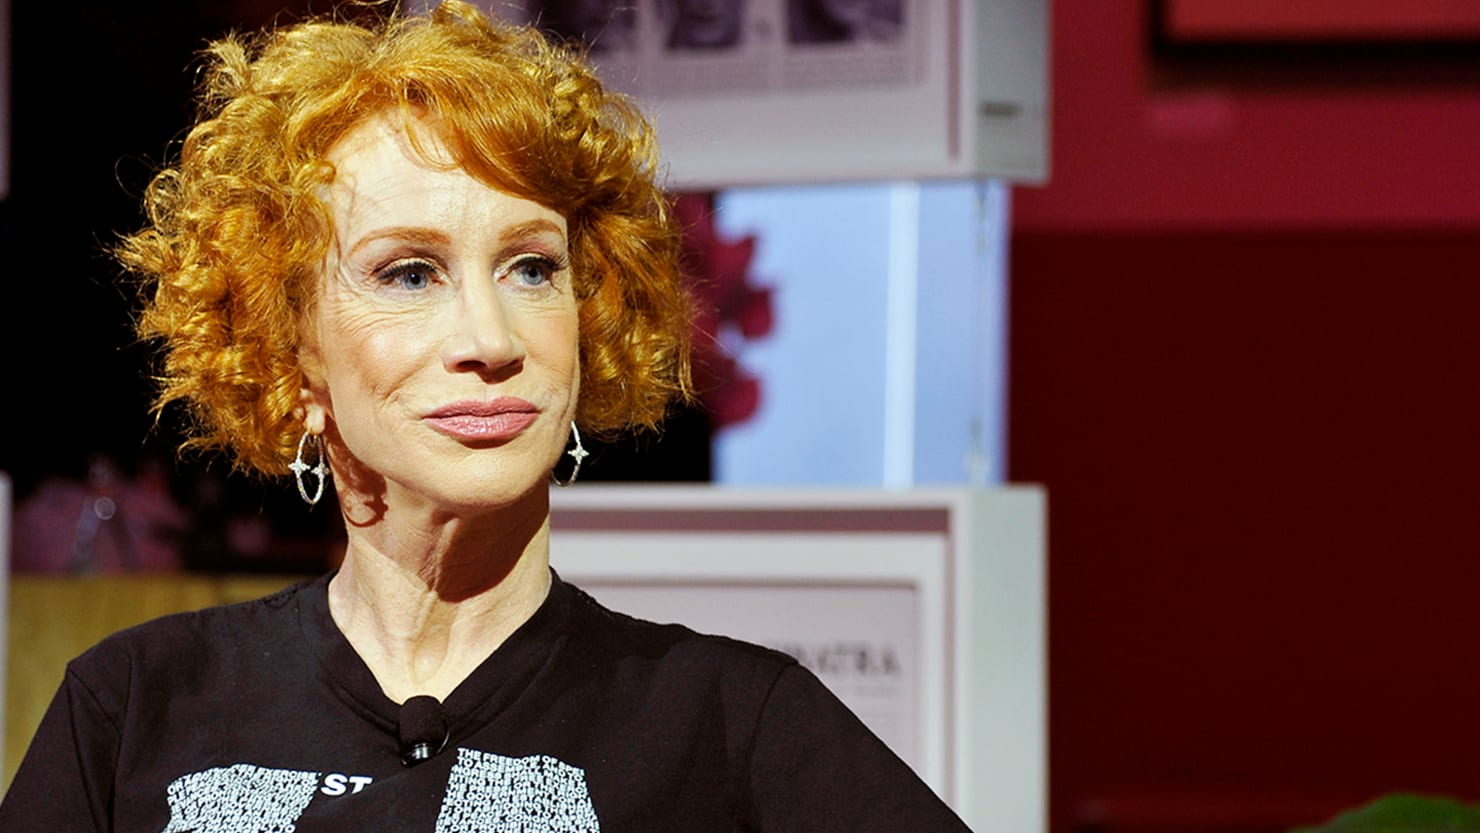 Kathy Griffin Speaks Out on Legal Nightmare: 'I'm Not a Terrorist'